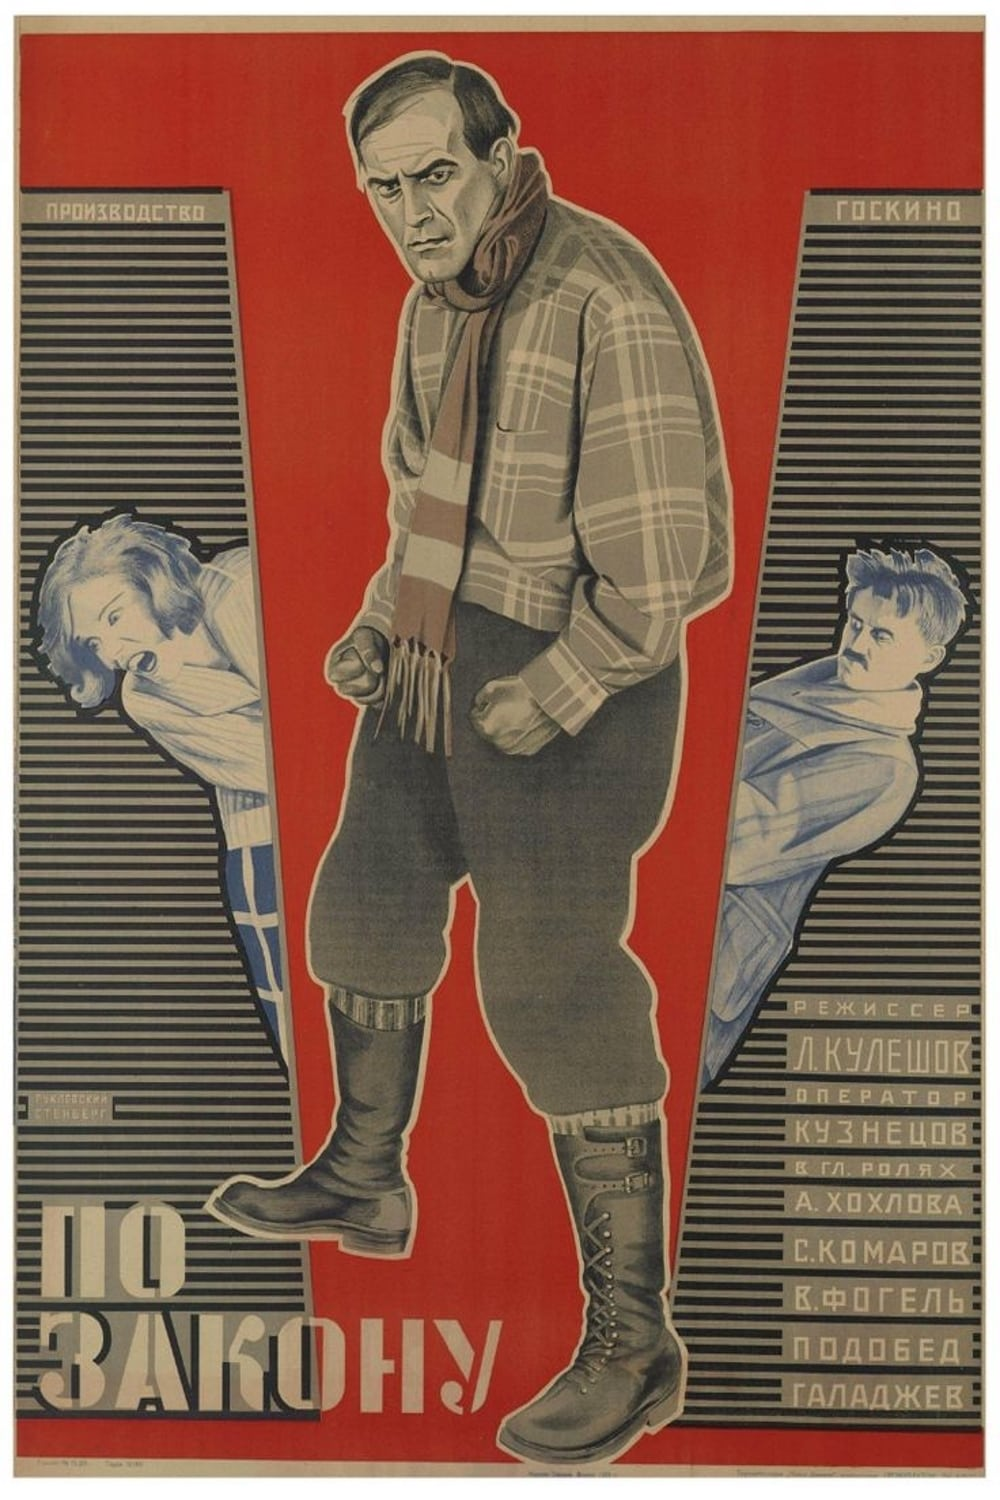 By the Law (1926)